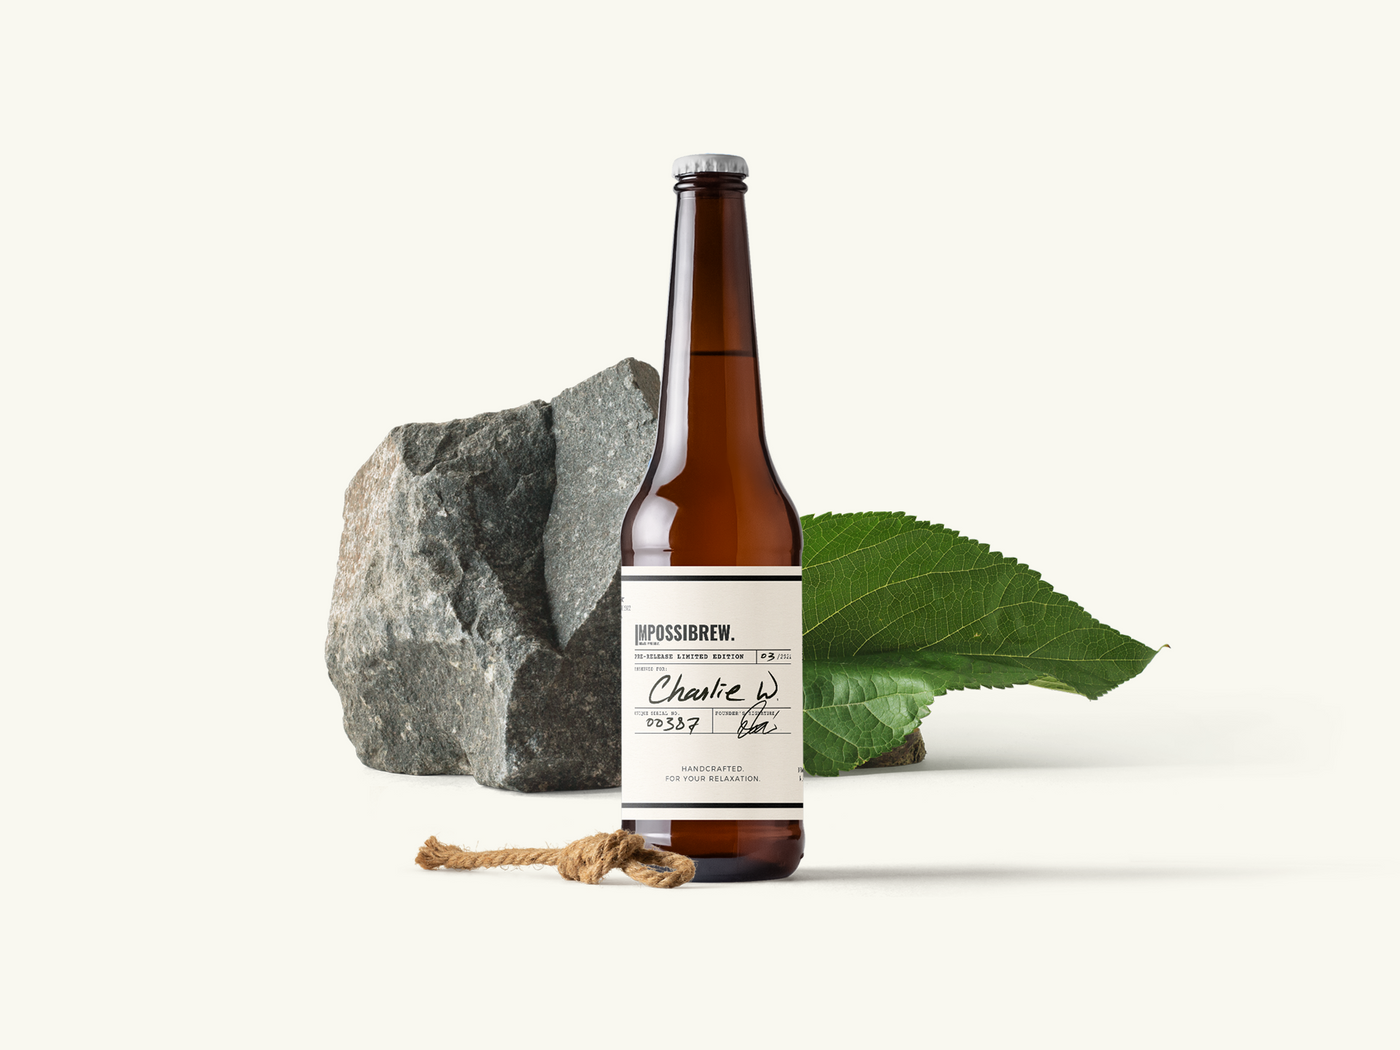 A bottle of Impossibrew theanine beer in front of natural designs, rocks and plants. highlighted and focused. studio quality. With Charlie W written on it.